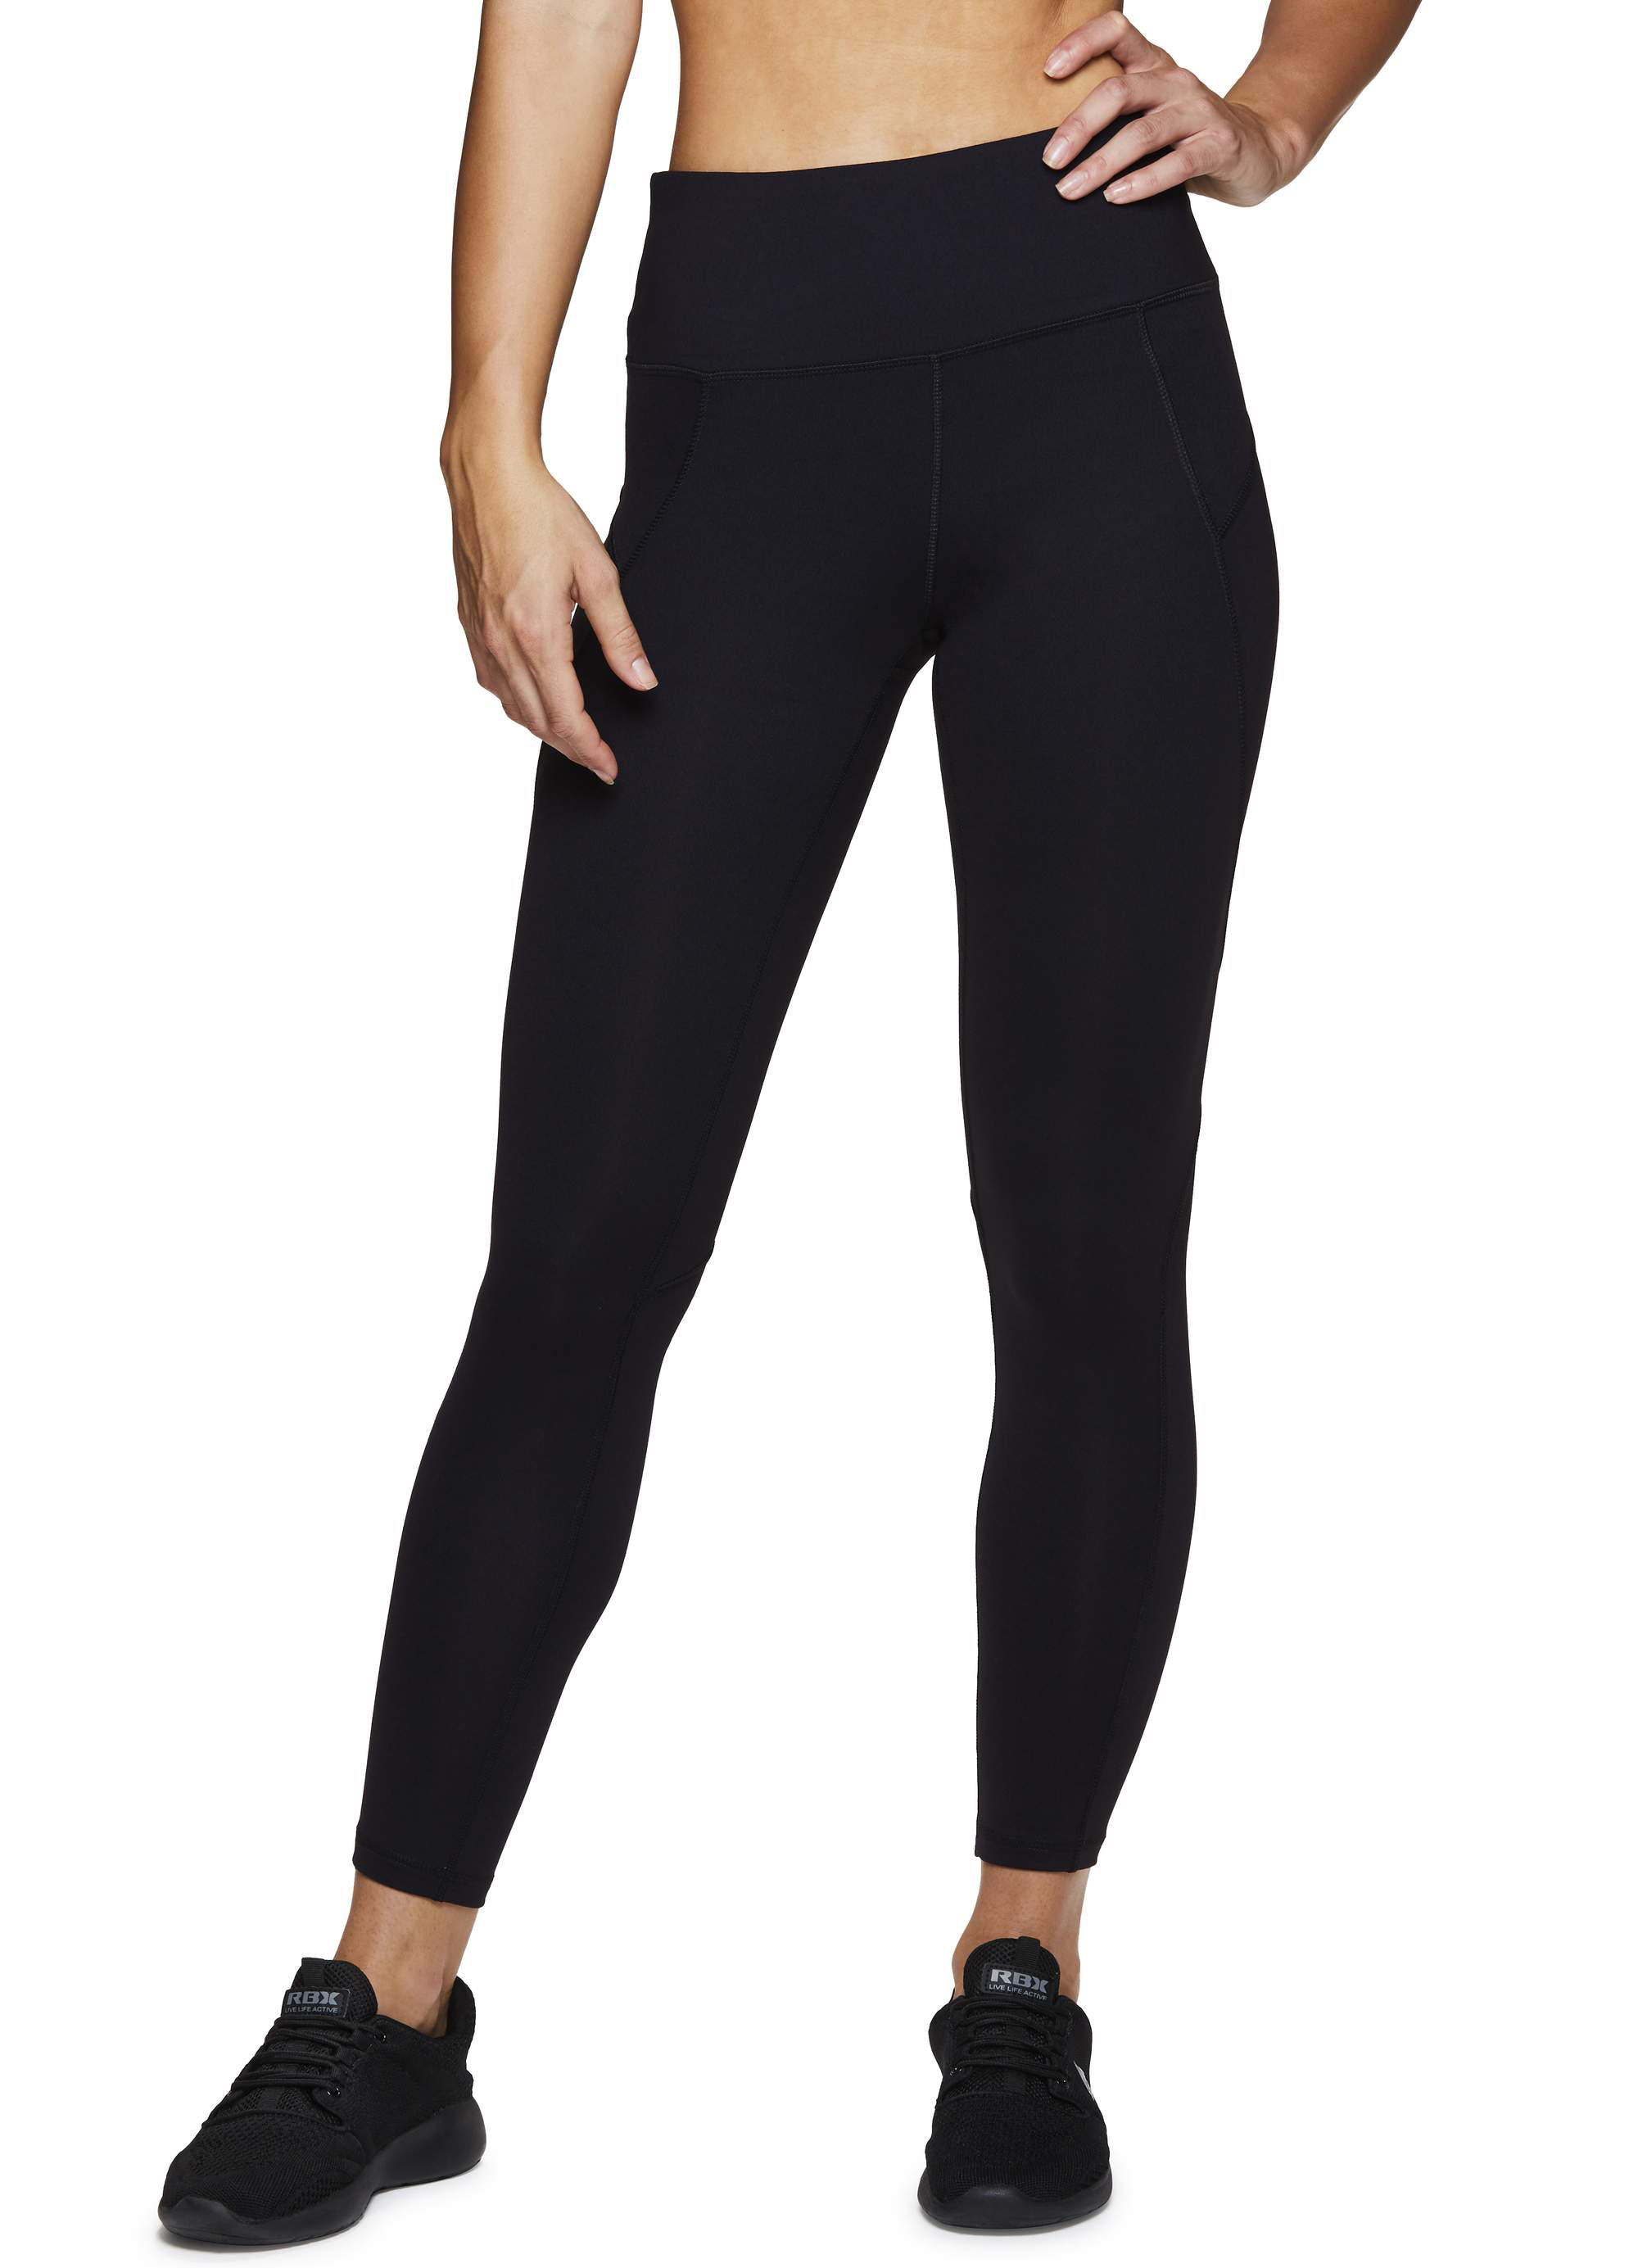 Women's Active N/S 7/8 Ankle Legging